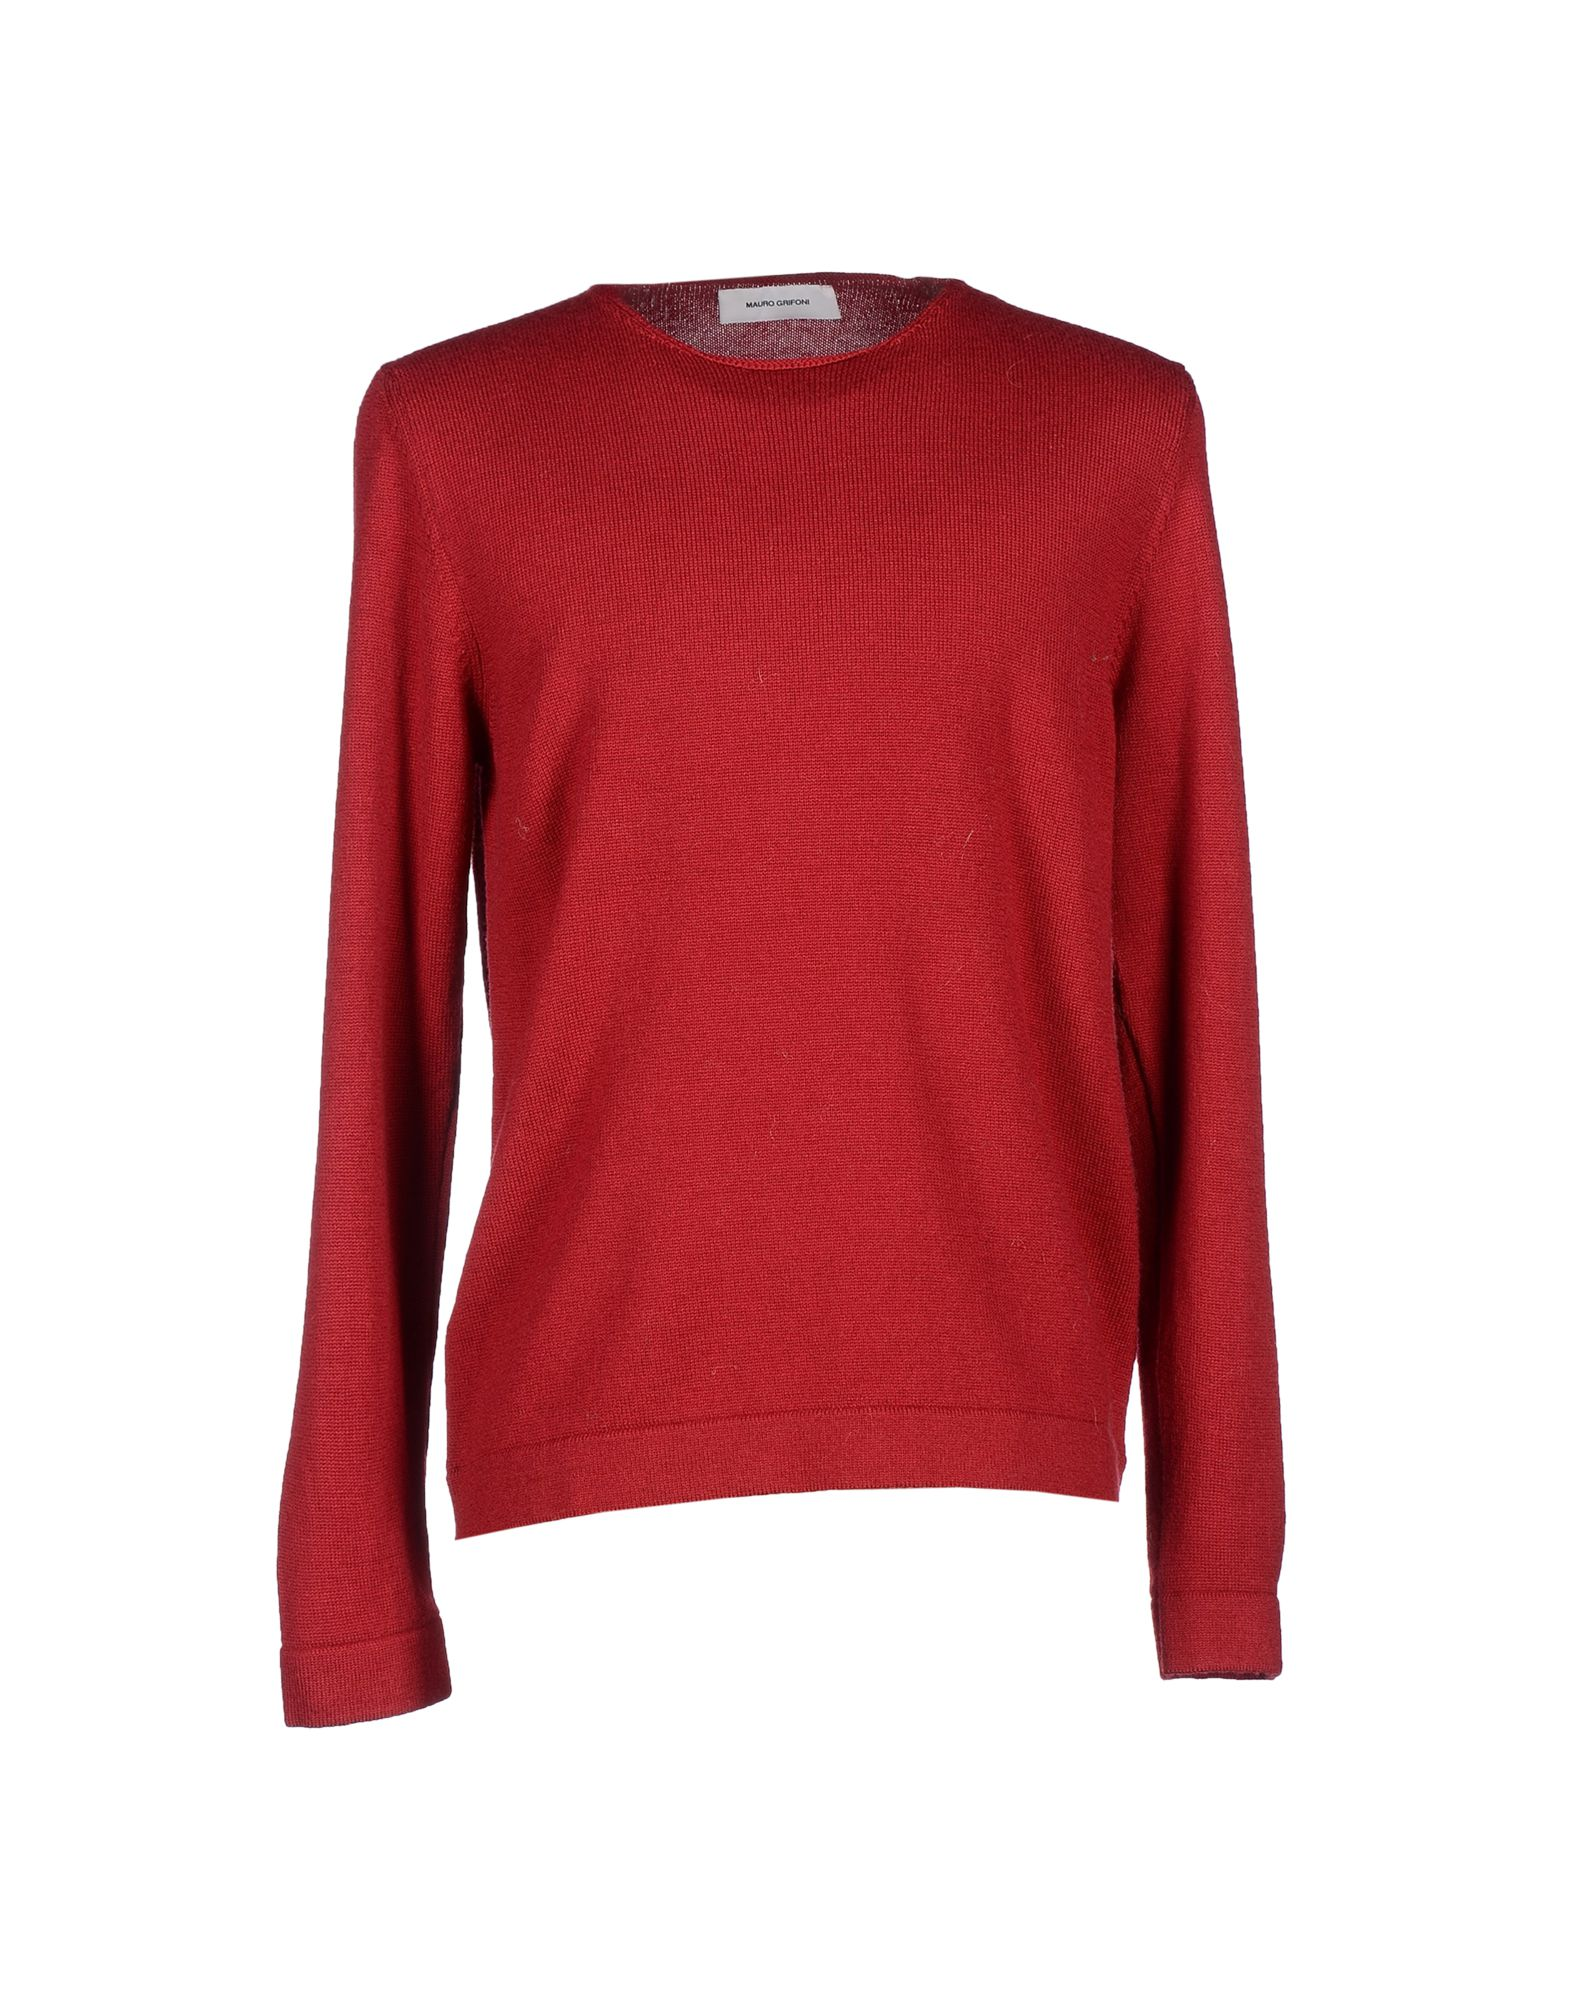 MAURO GRIFONI Red Wool Sweater